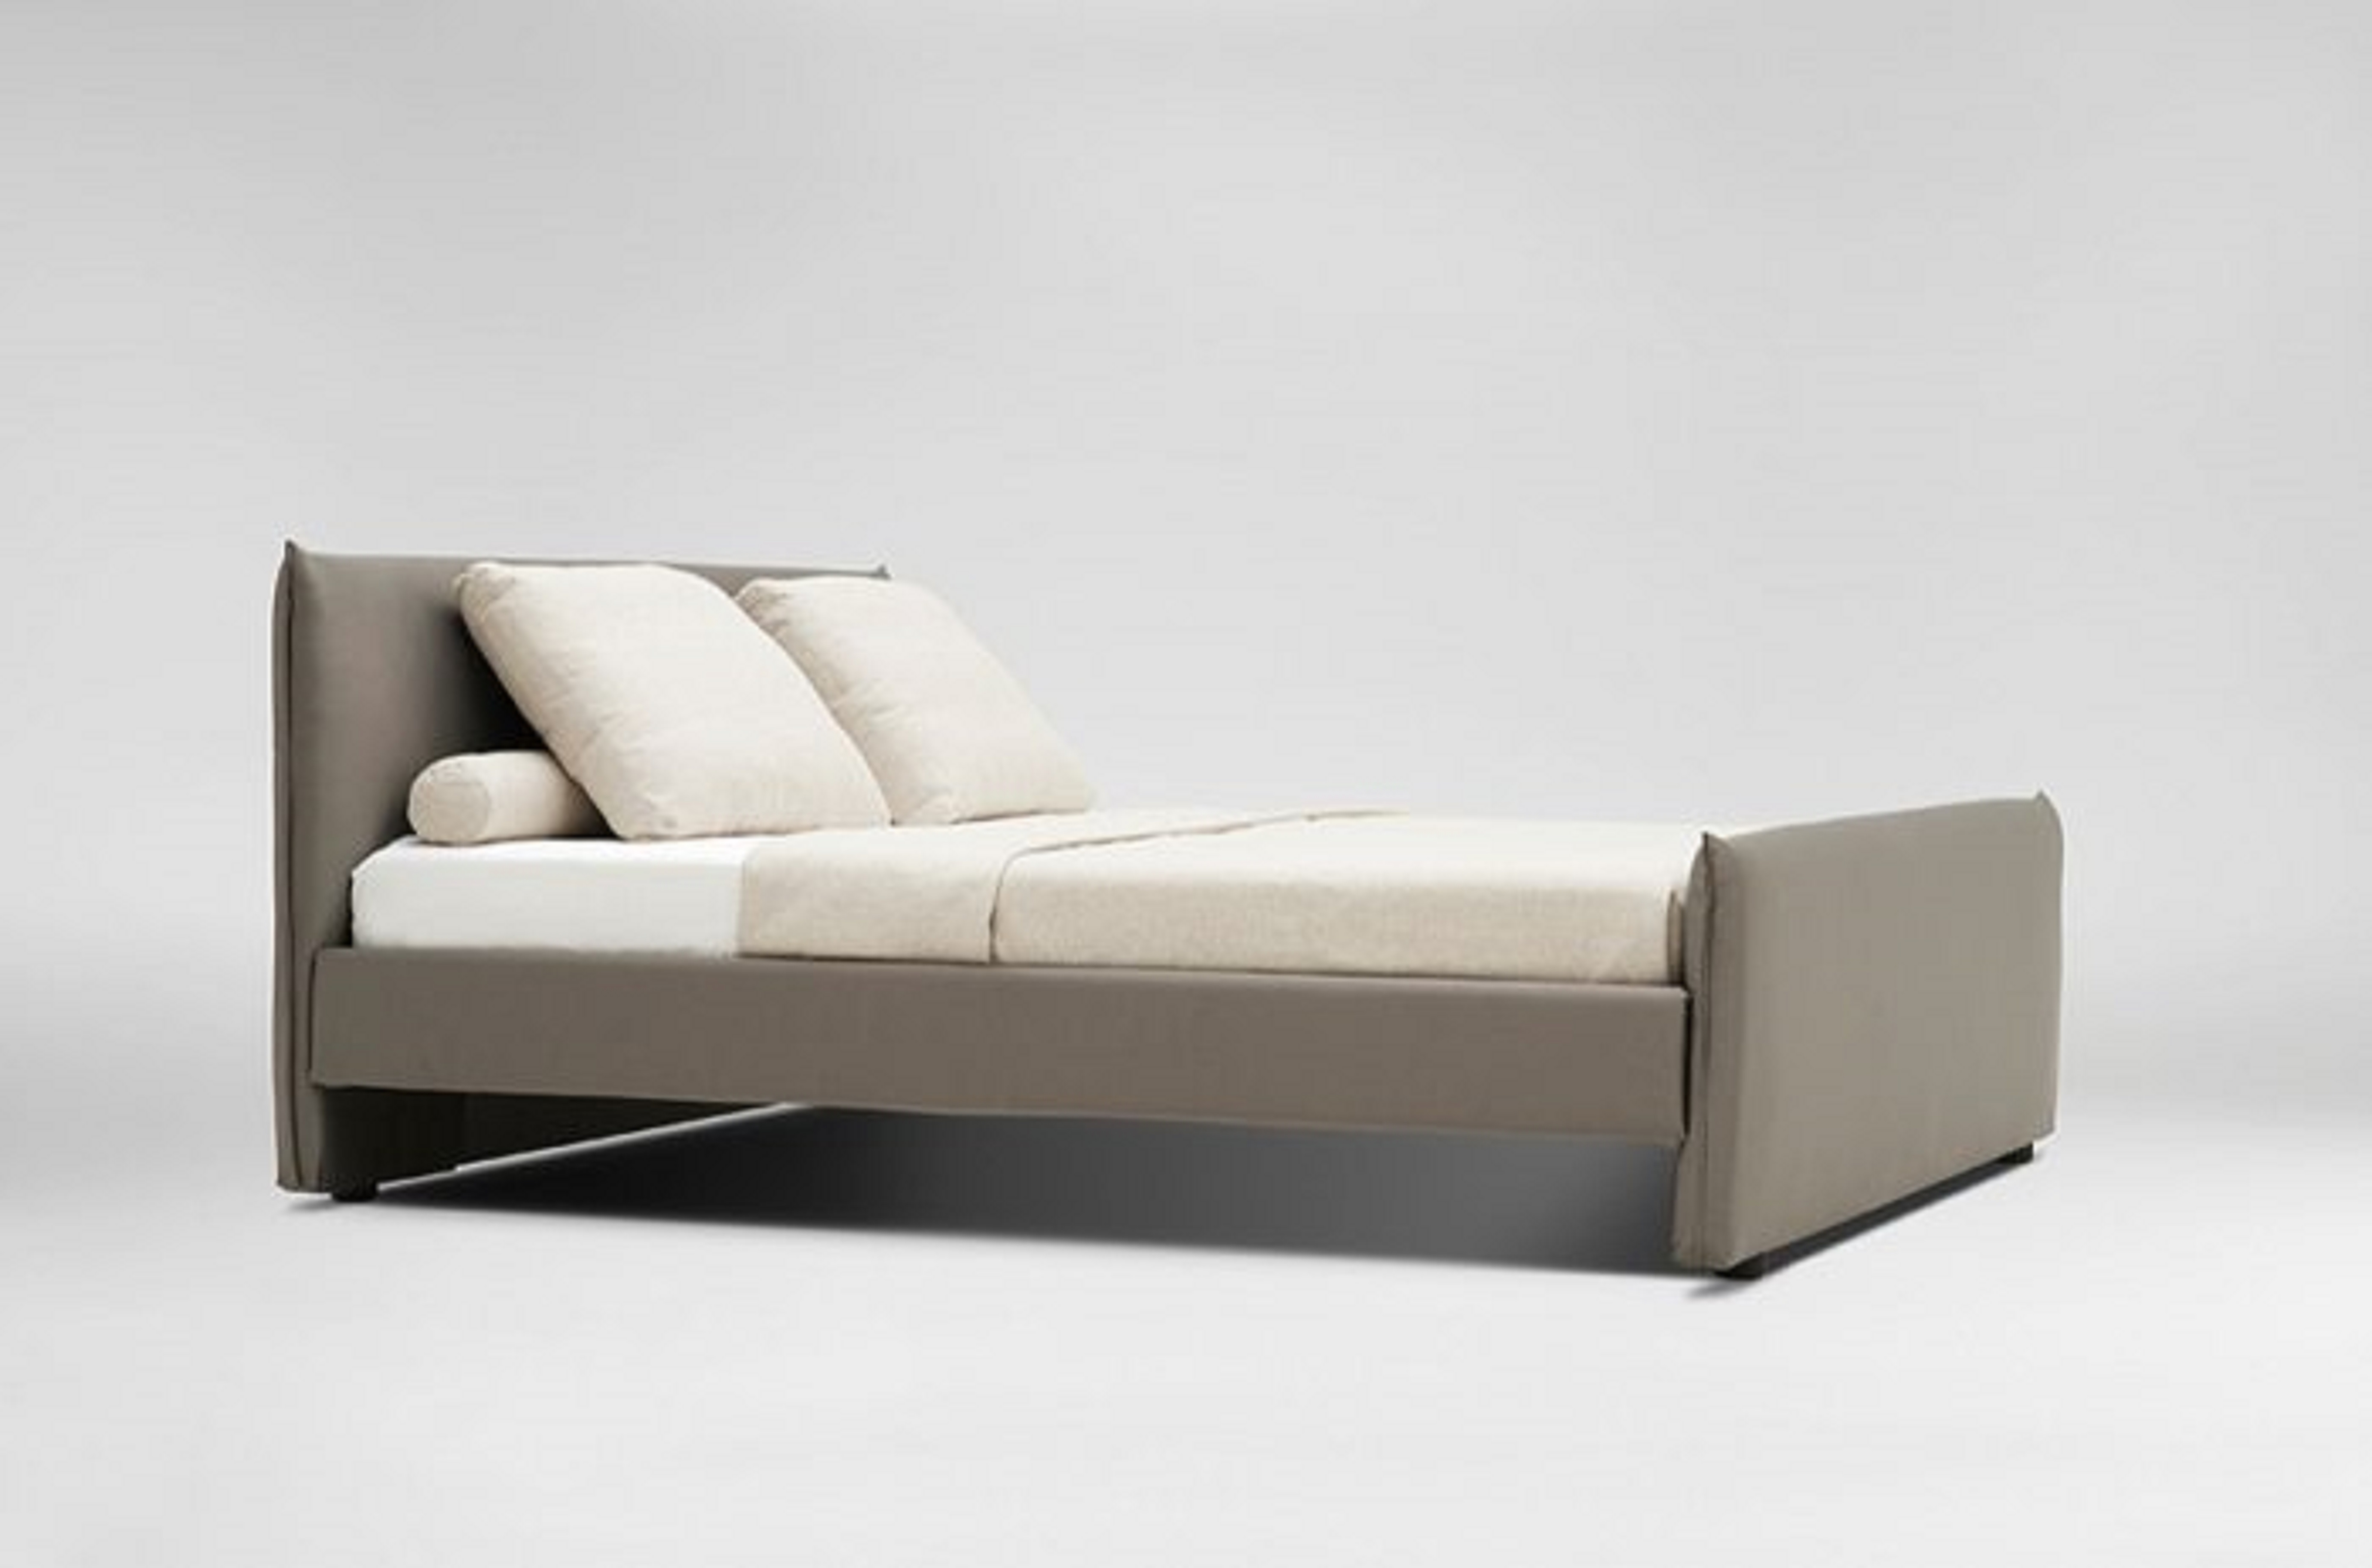 crescent sofa camerich outside category bed bangladesh